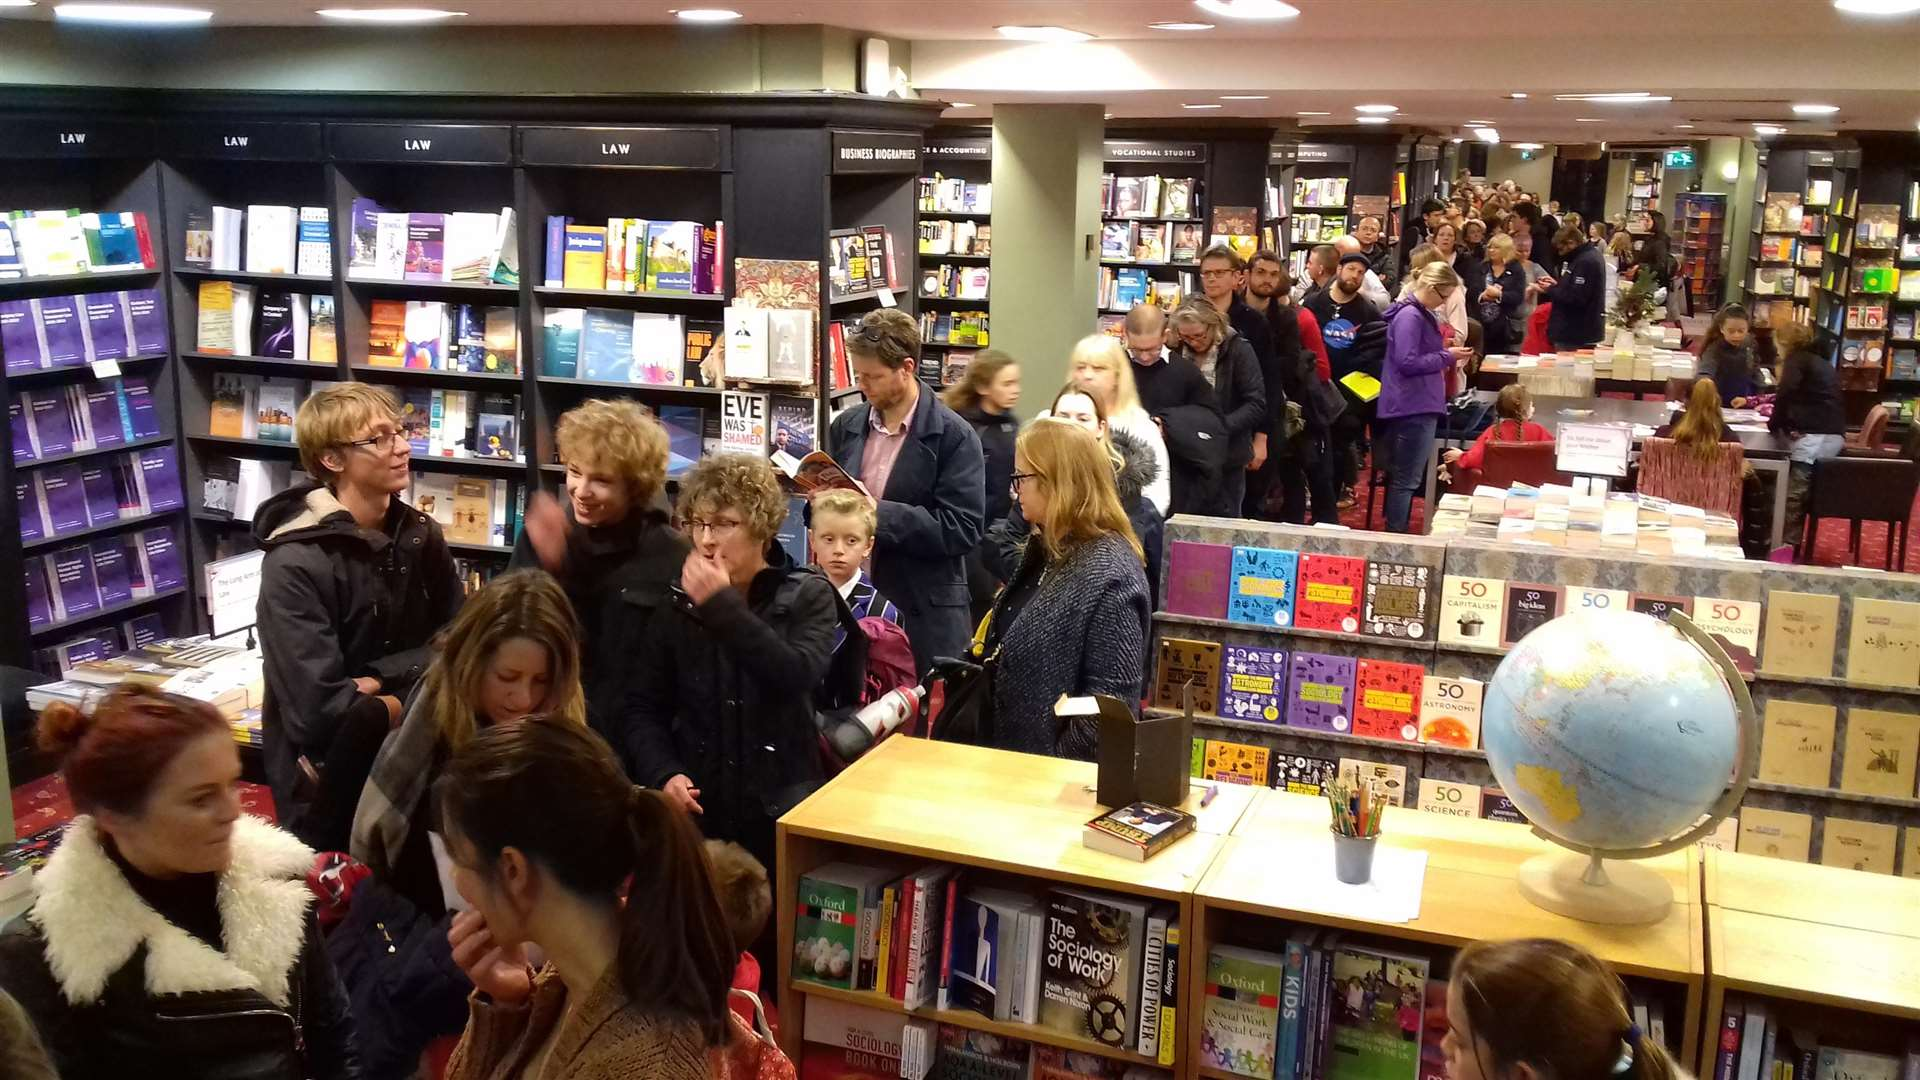 The queue at Waterstones (5689909)